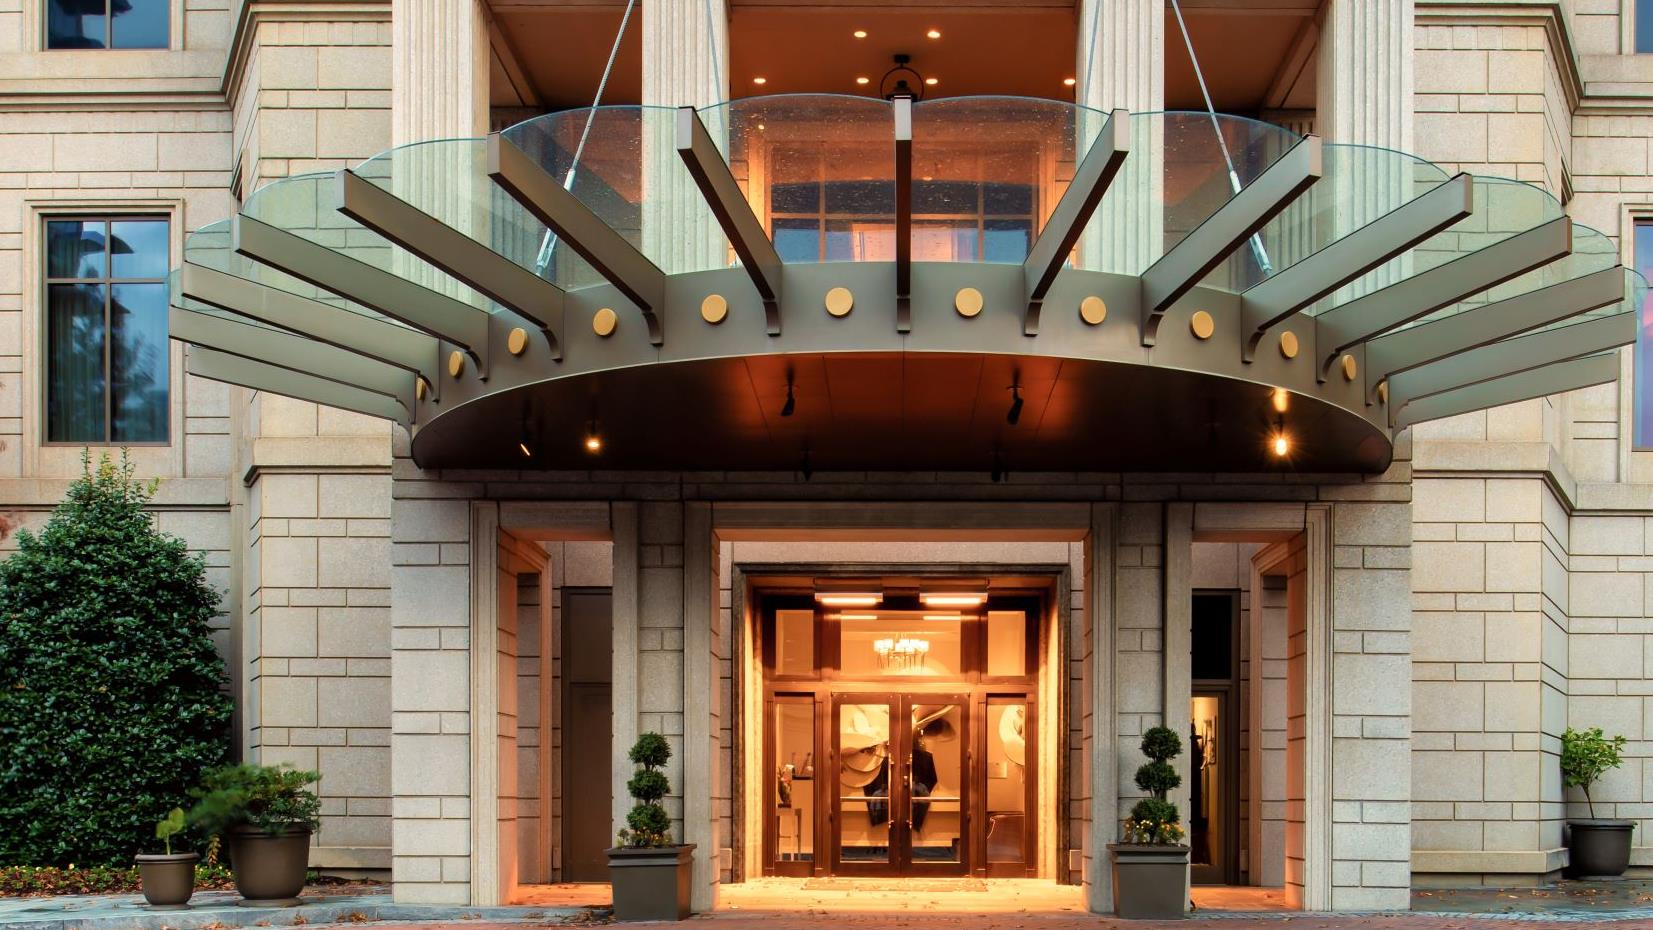 1-Night Stay at Waldorf Astoria Atlanta Image